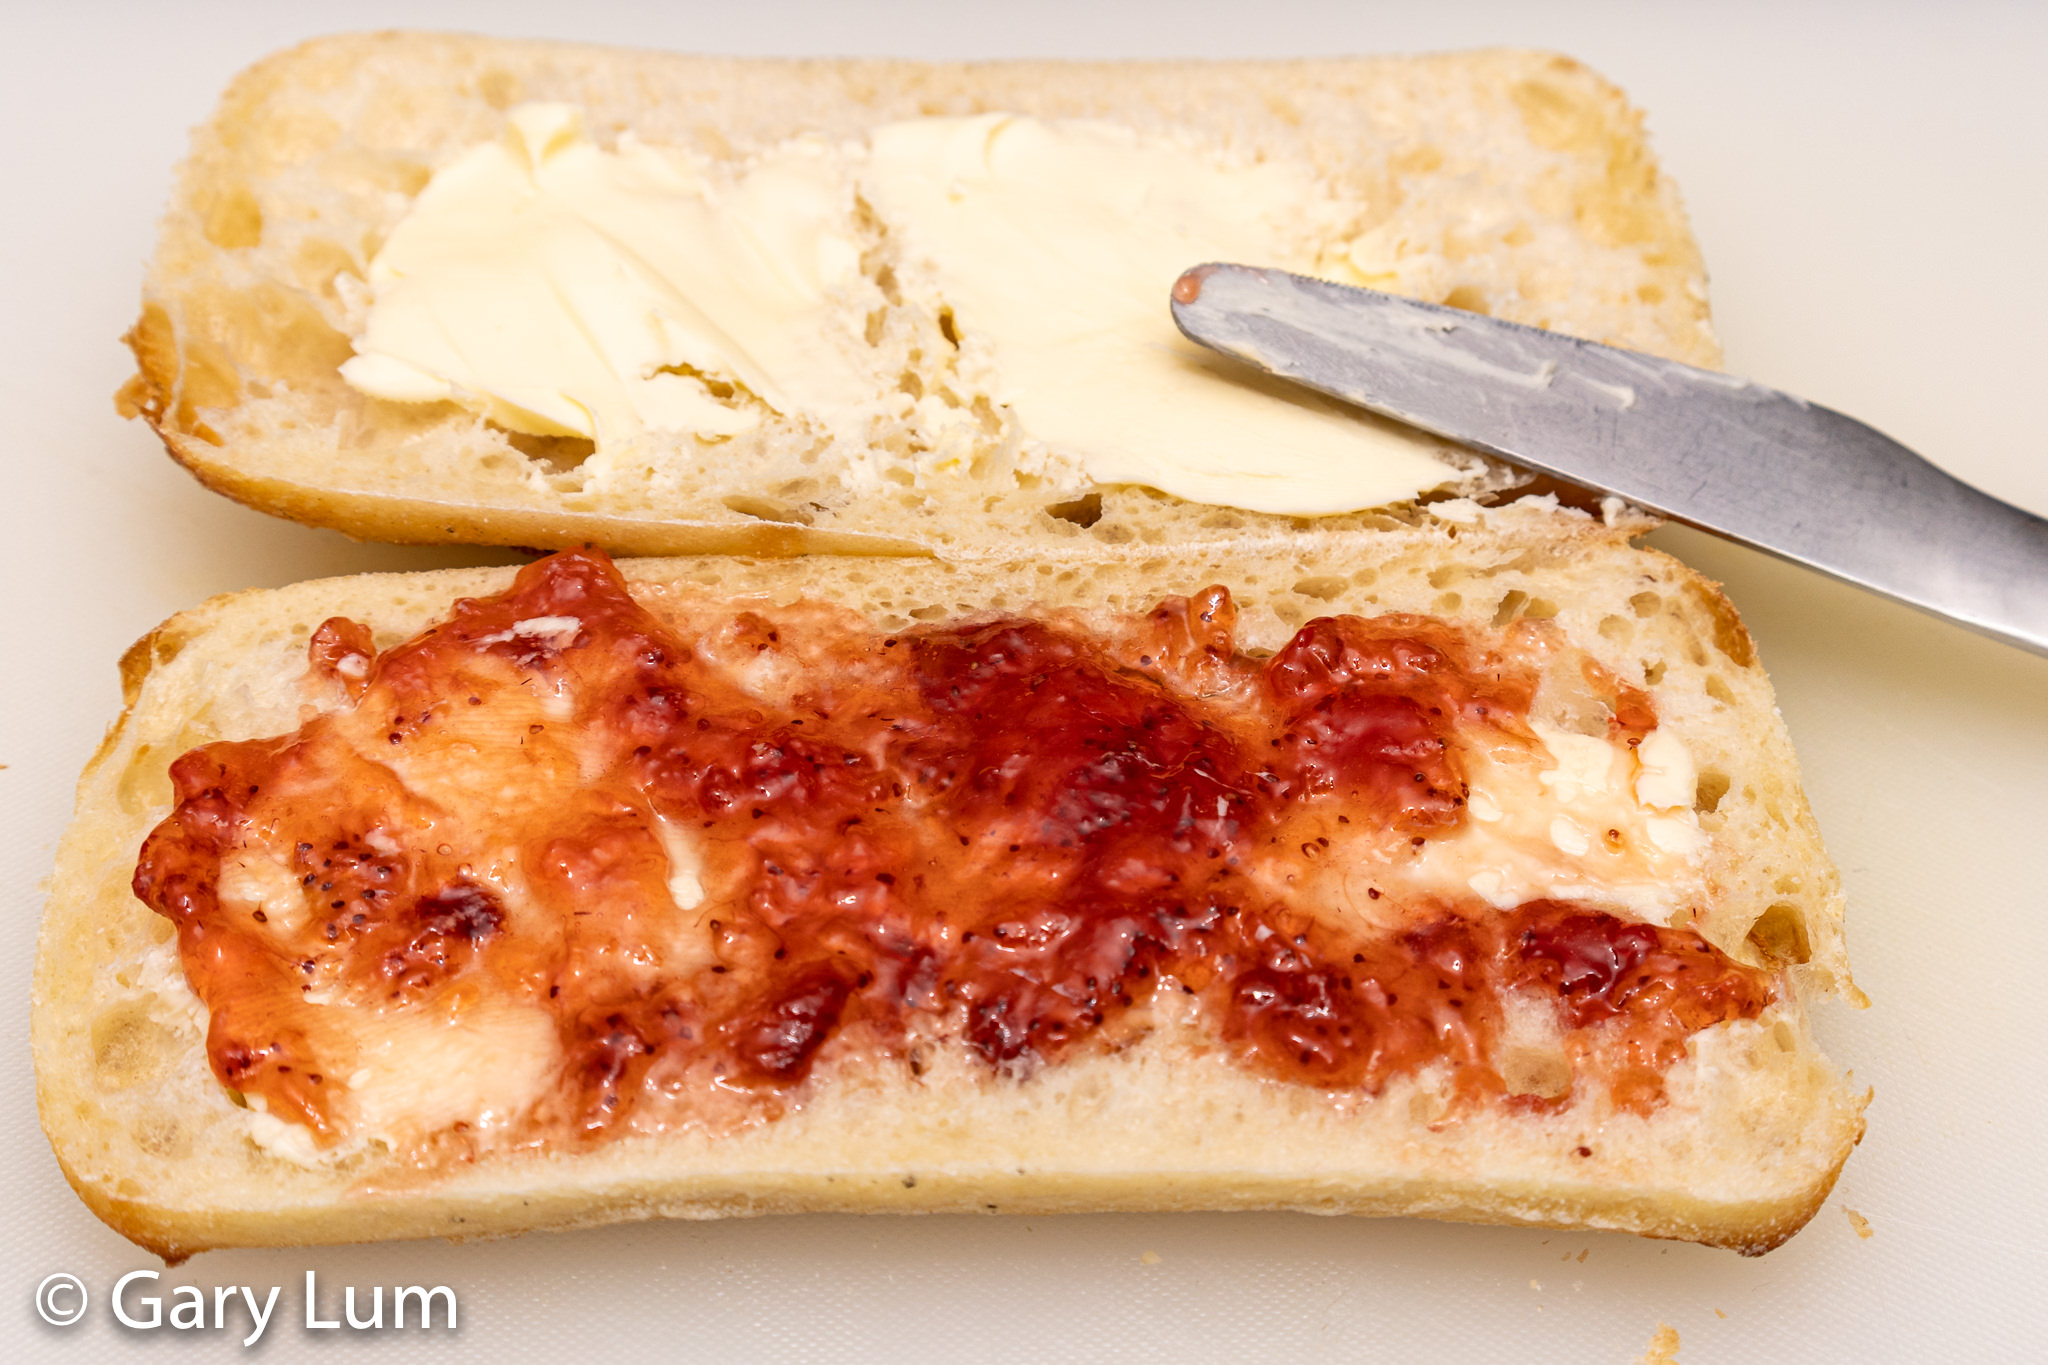 Turkish bread roll with Lurpak butter and jam.